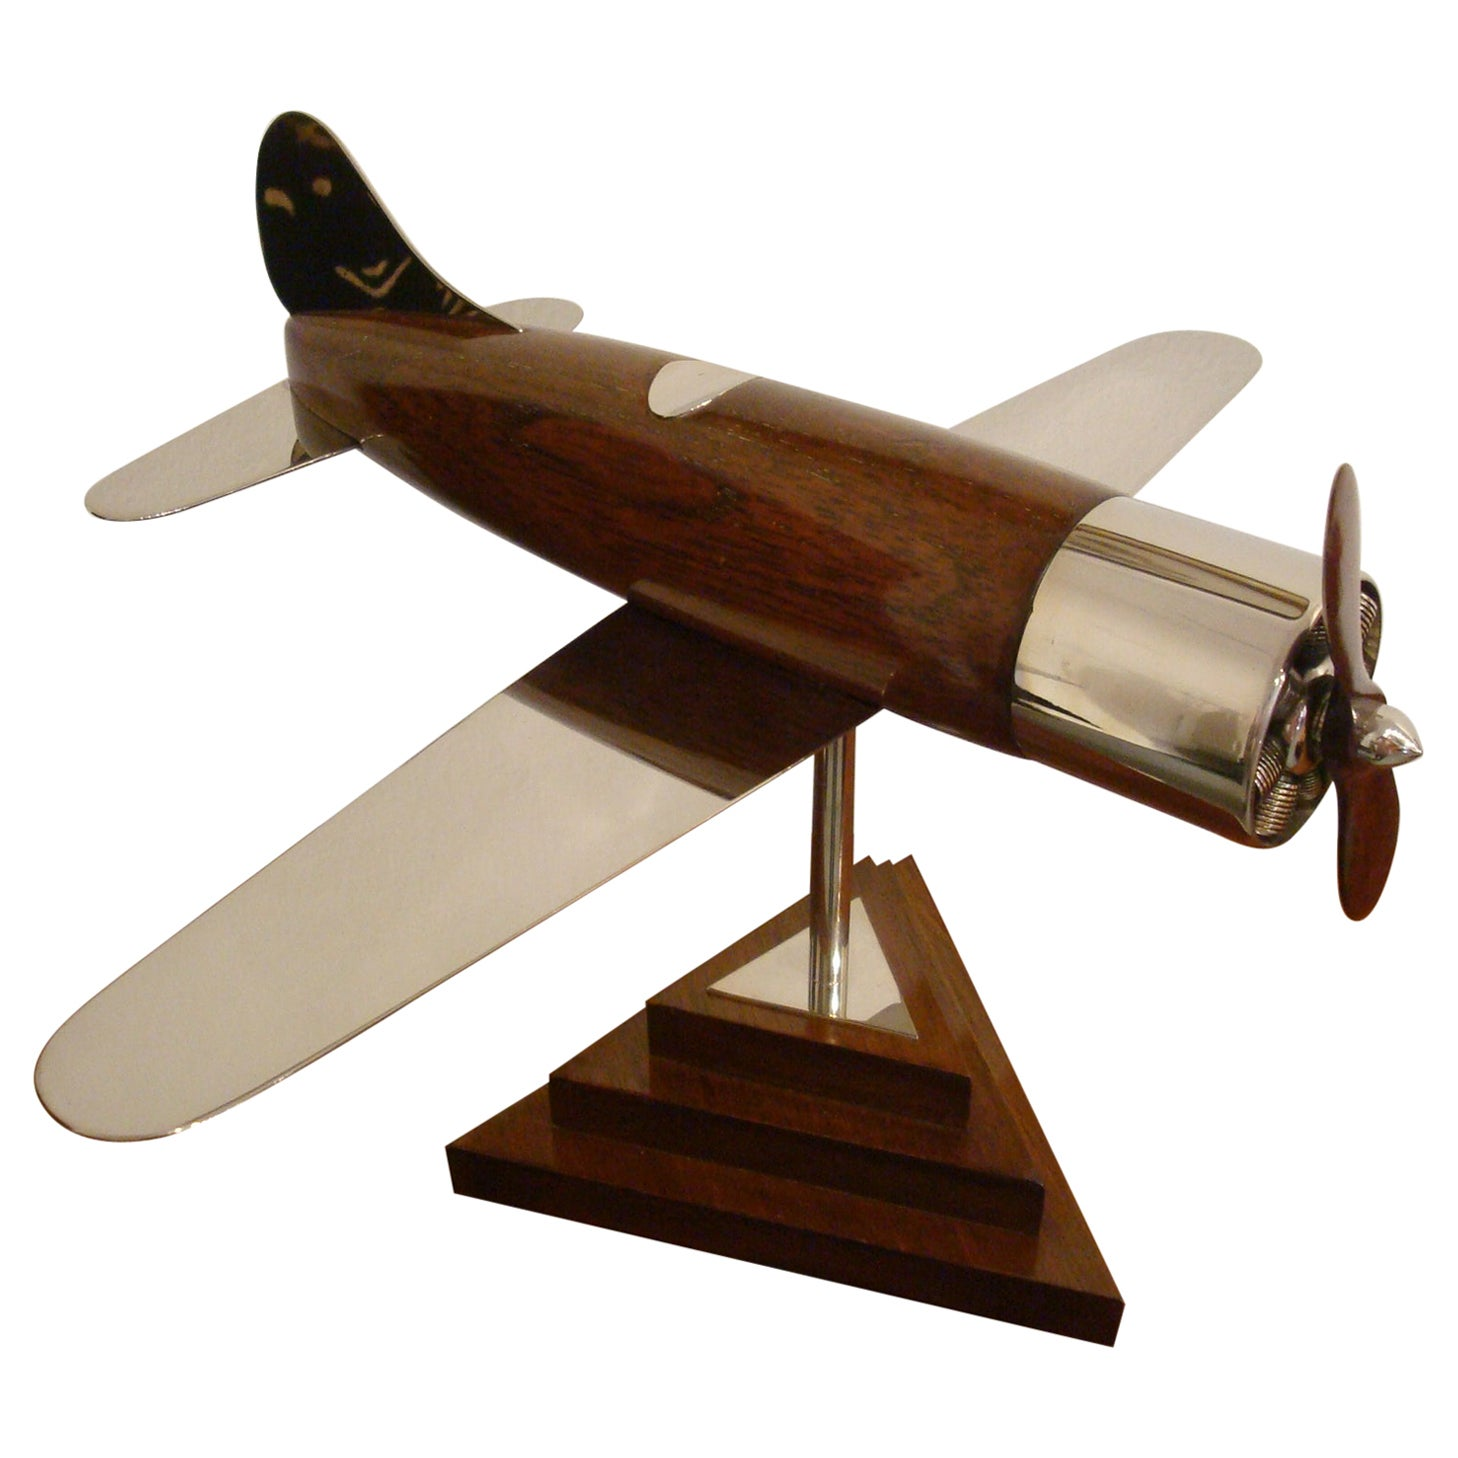 20th Century, Art Deco Streamline Airplane Wooden Model Sculpture, 1930s